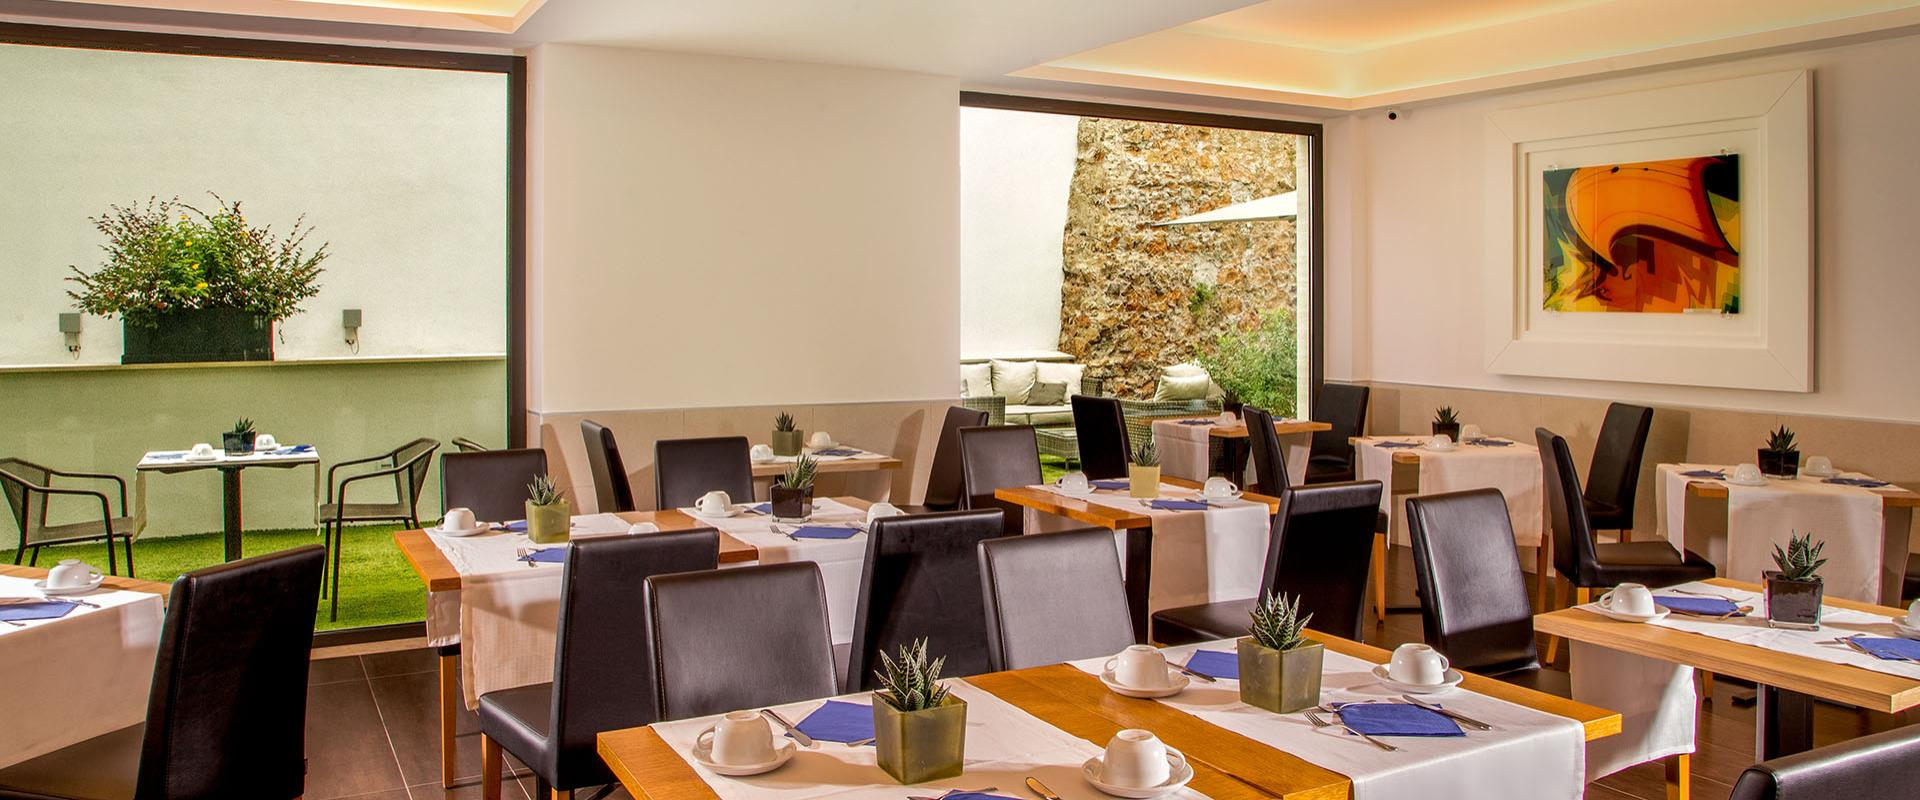 For guests staying at the Best Western Plus Hotel Spring House rich buffet breakfast every morning